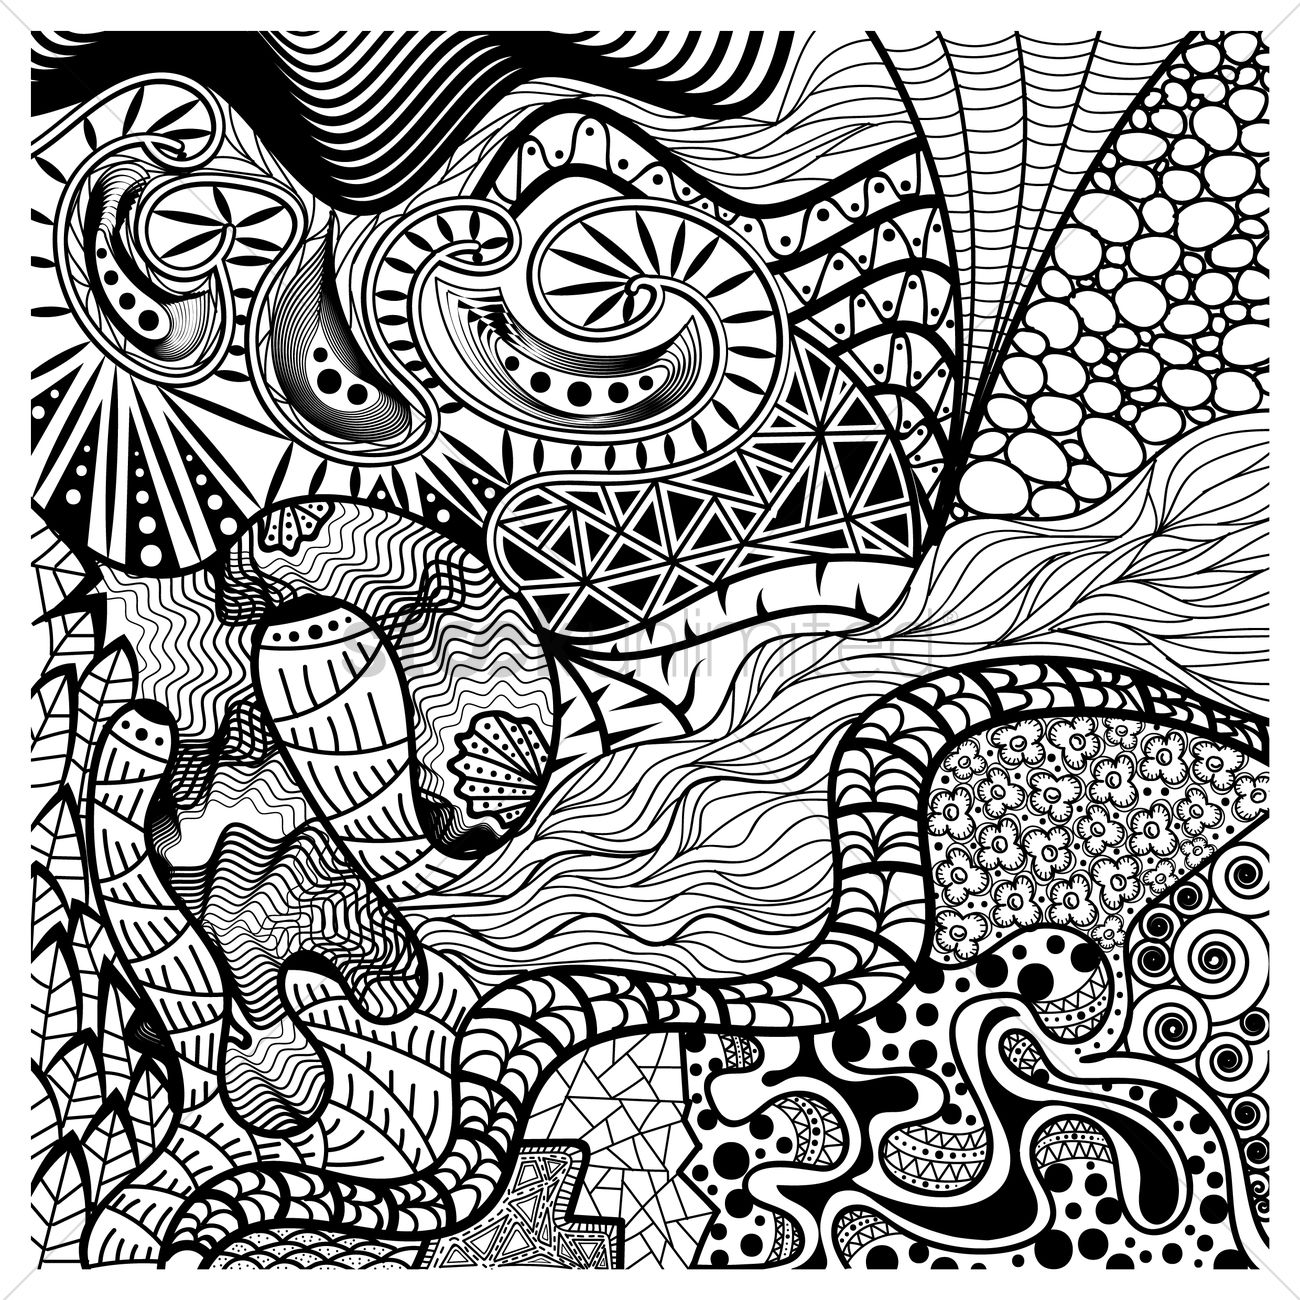 Intricate Abstract Design Vector Image